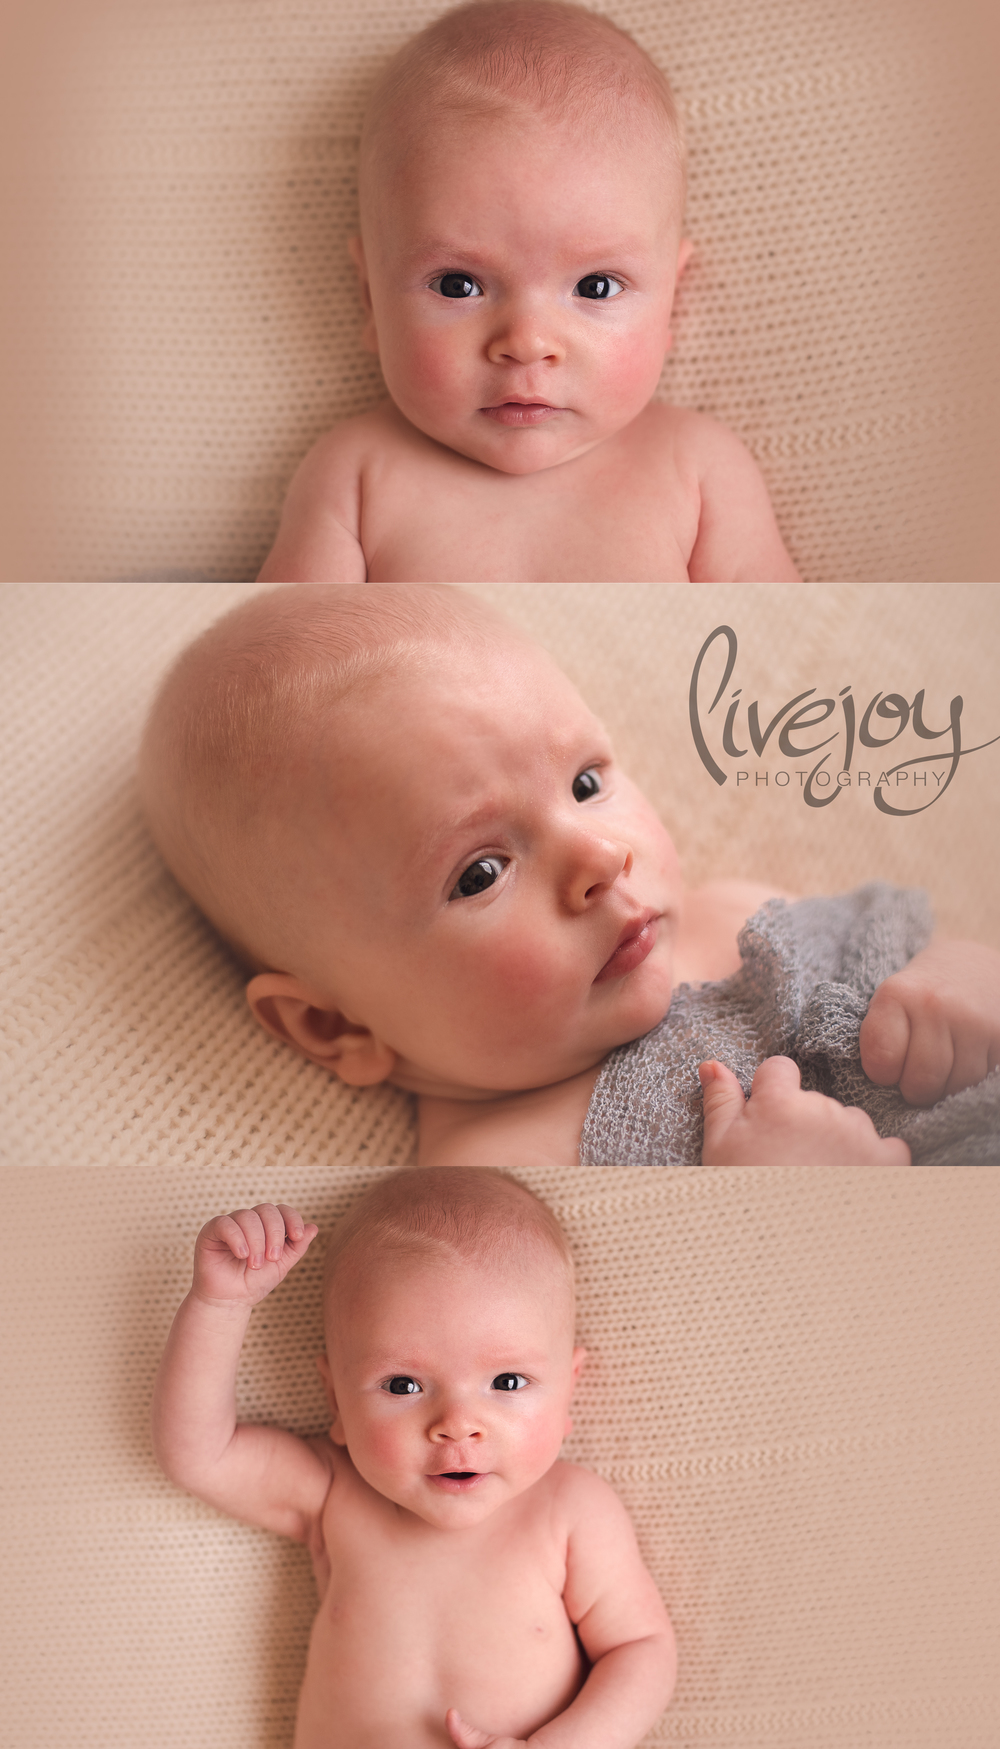 3 Month Baby Boy | Oregon | LiveJoy Photography